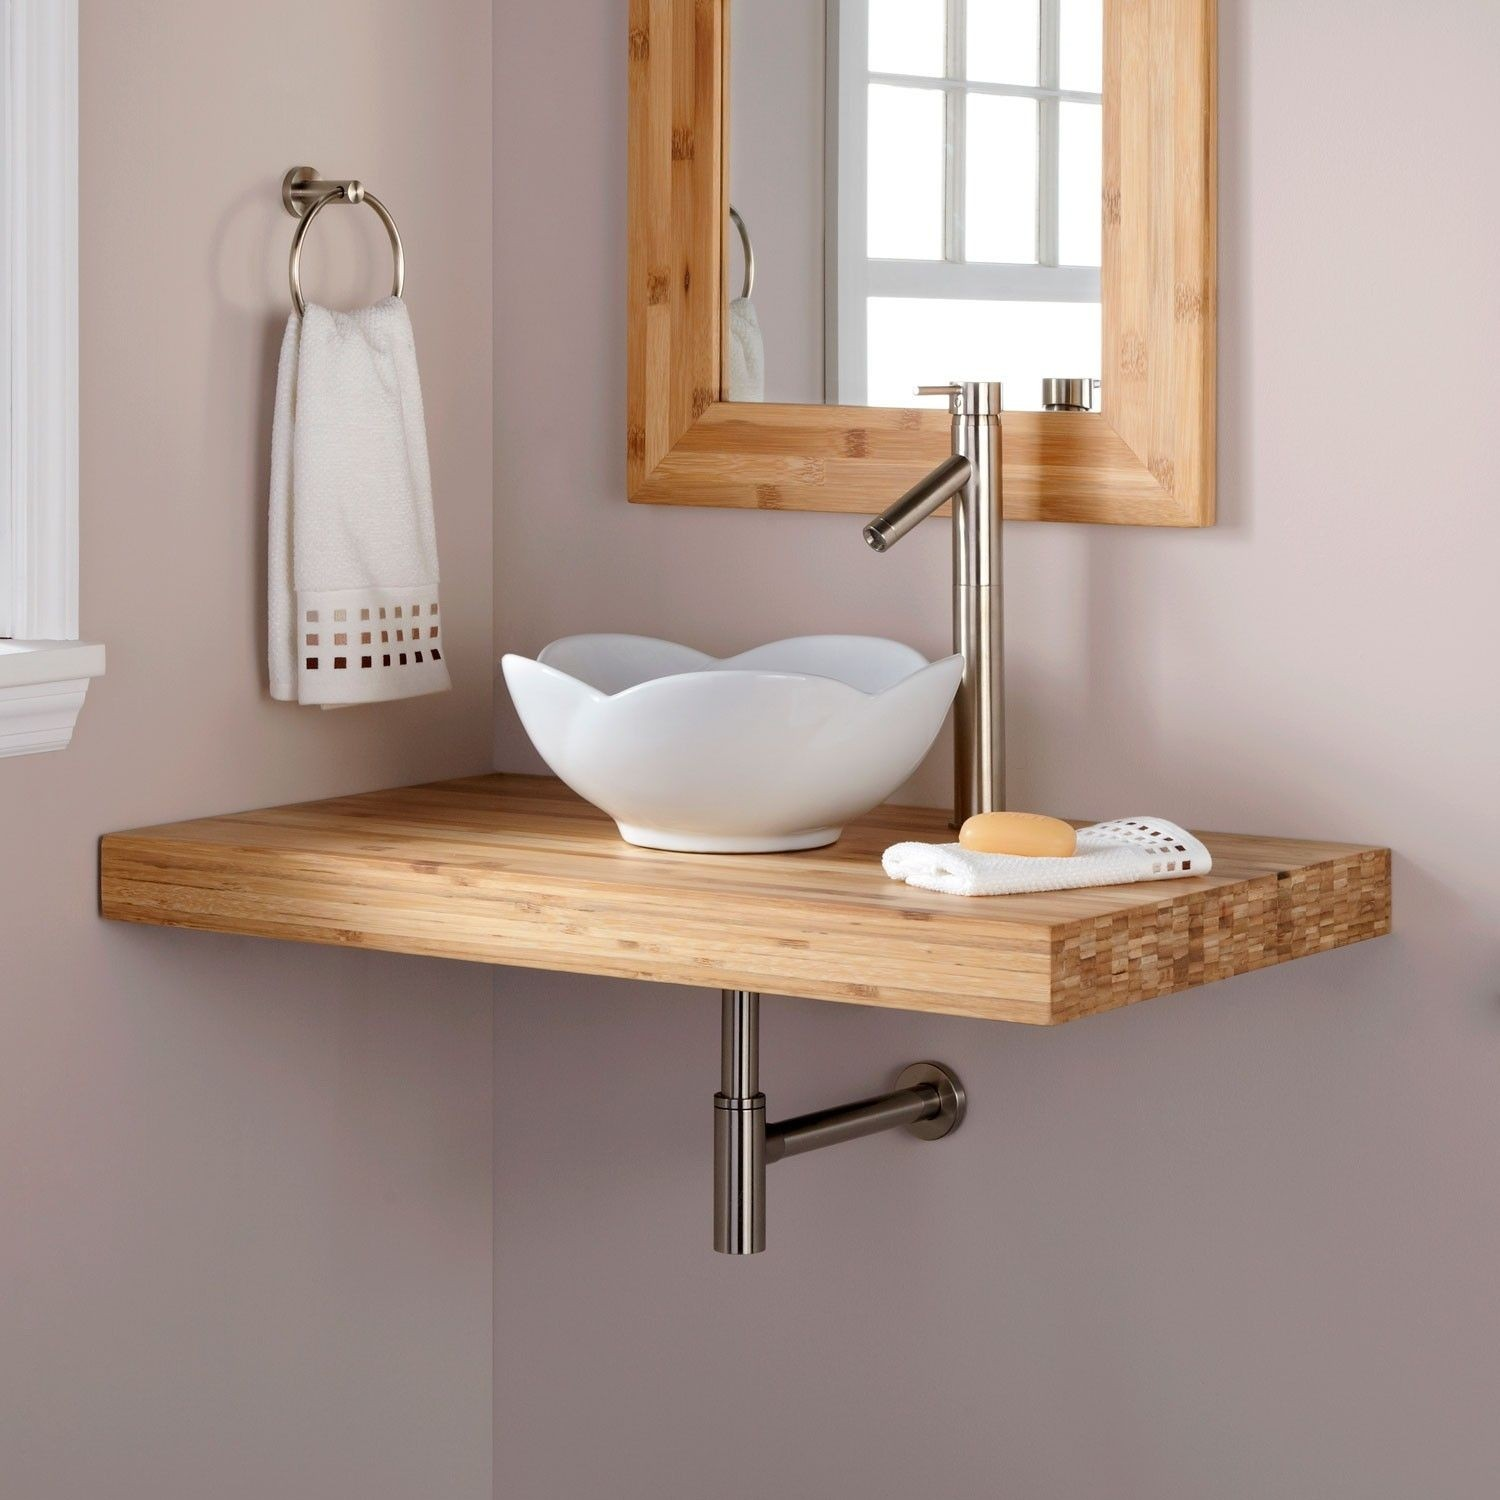 Vanity Tops For Vessel Sinks 2